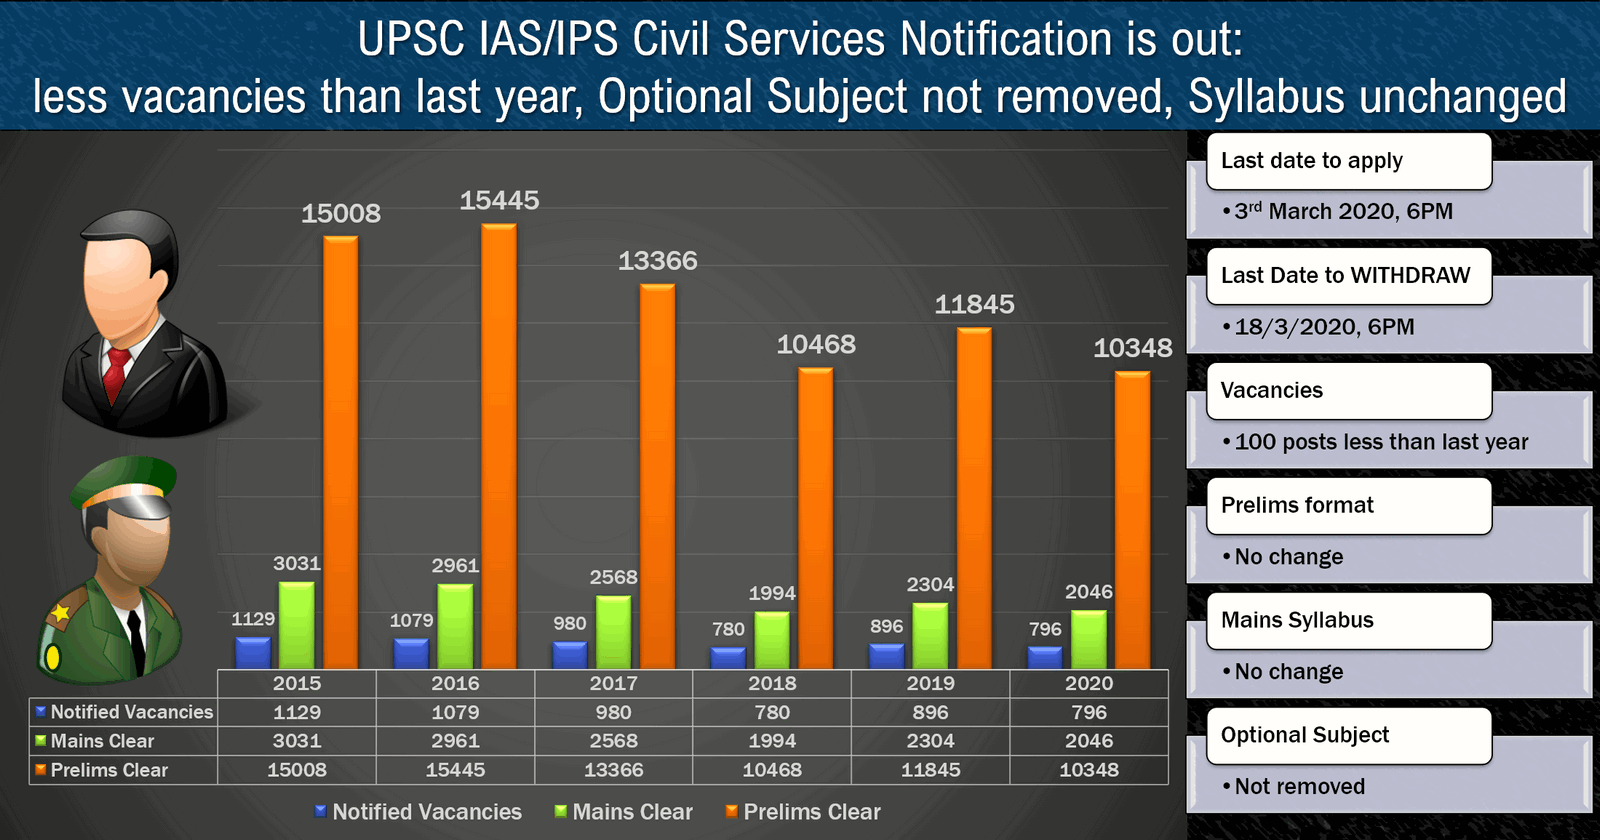 UPSC Notification for IAS/IPS Civil Services Exam is out